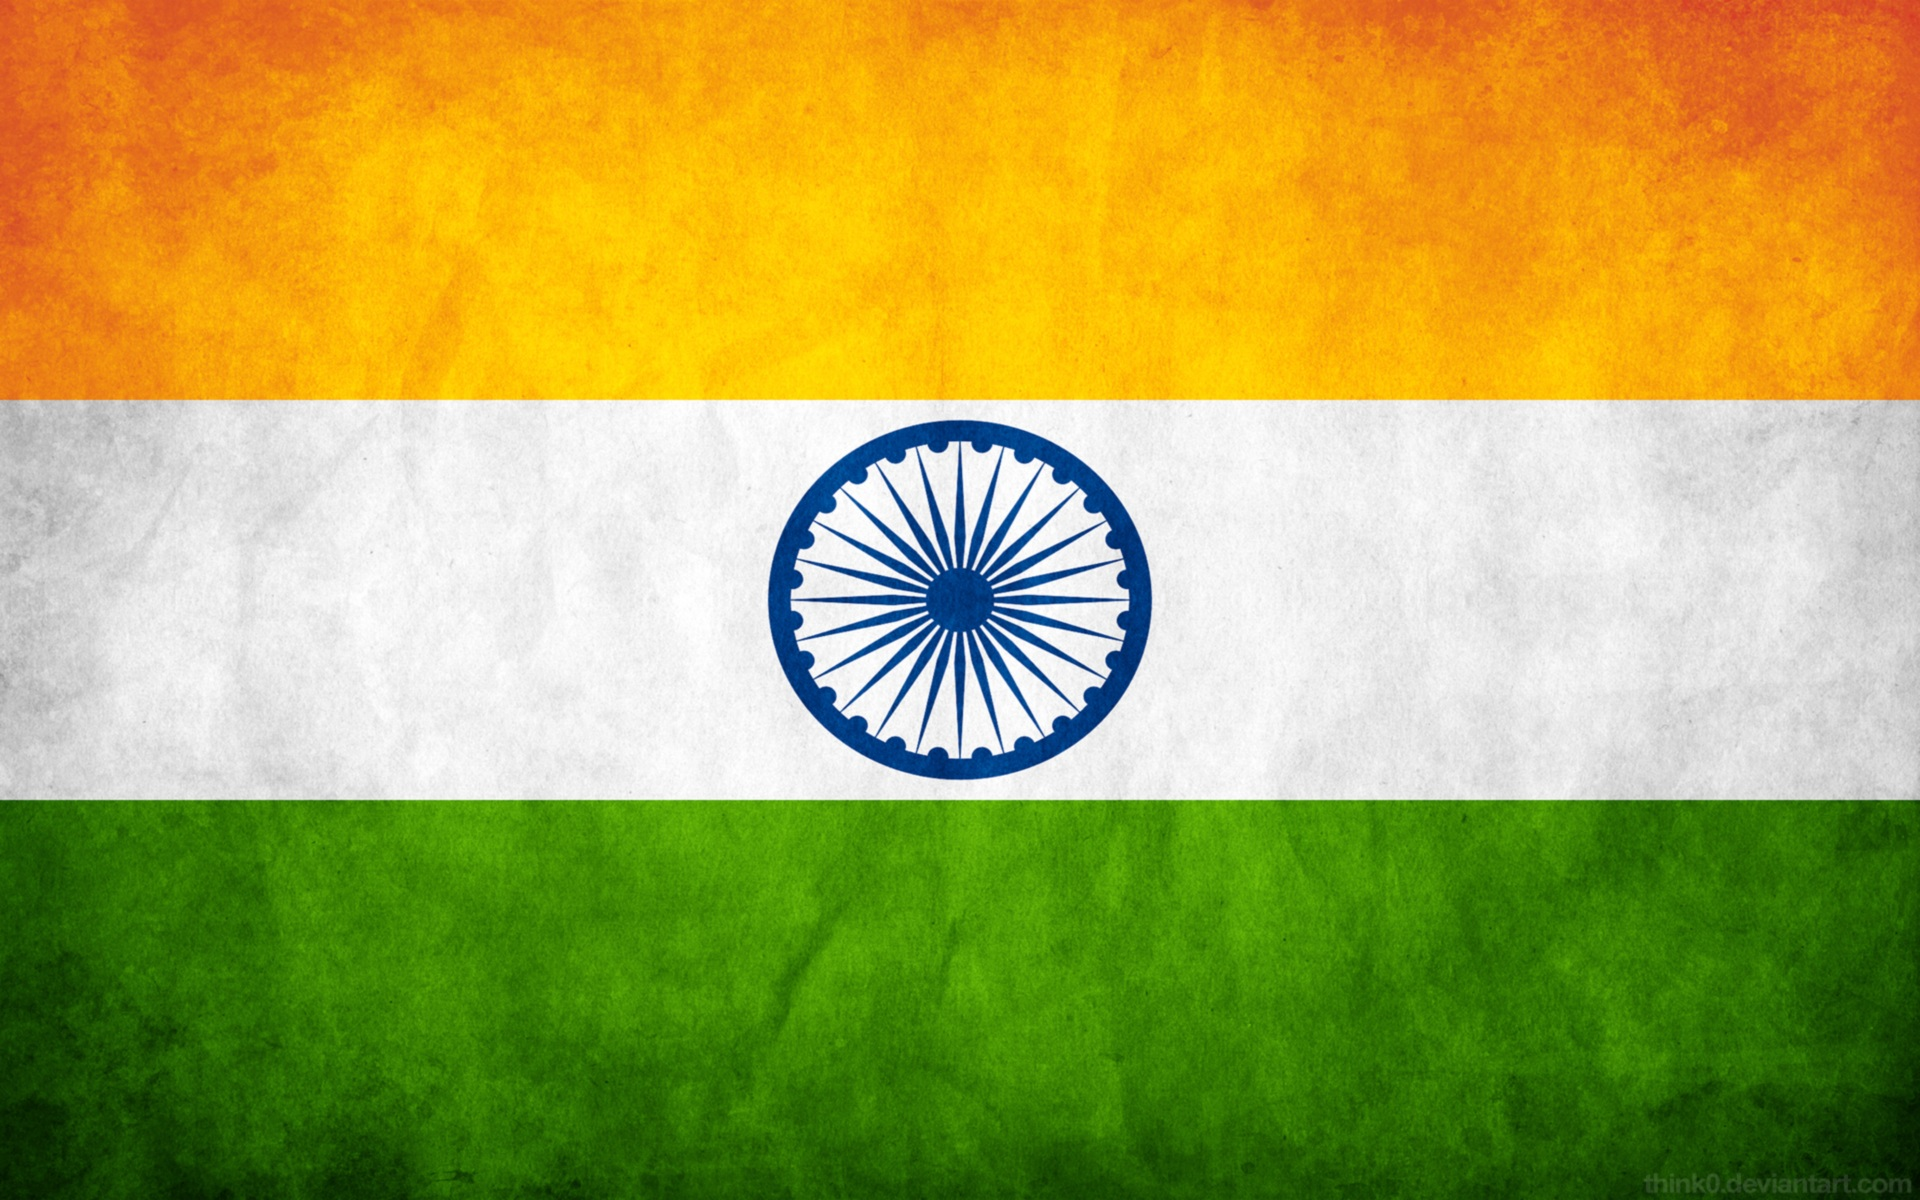 India Flag Hd Art: Indian Flag Images, HD Wallpapers [Free Download